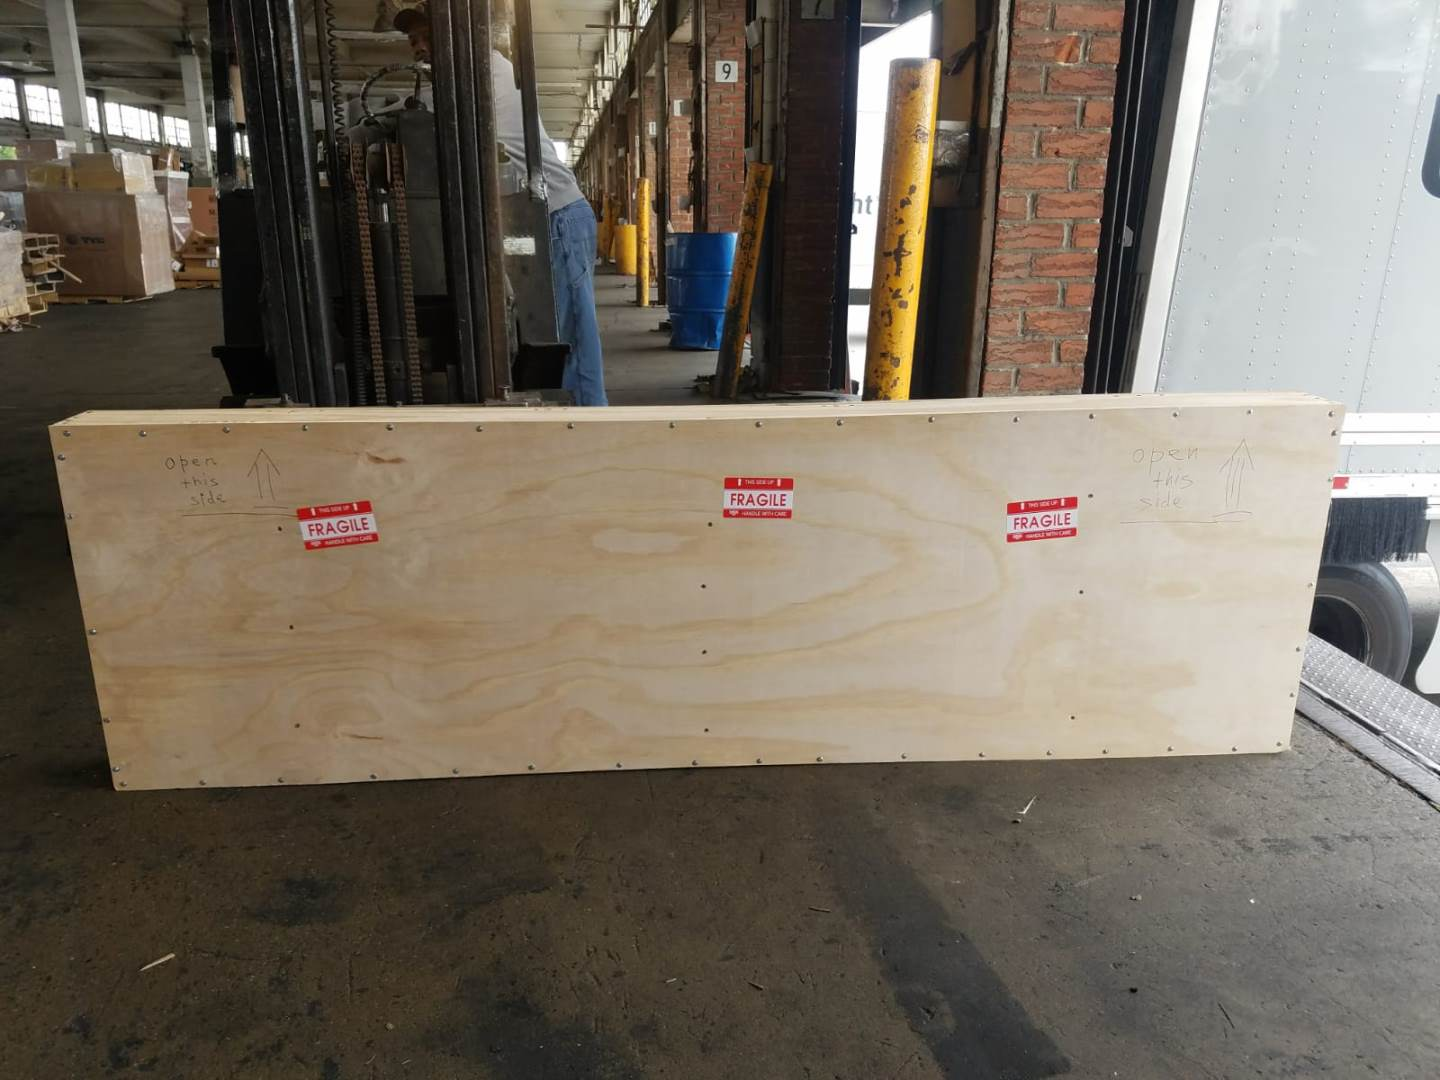 Fine art crating and shipping service